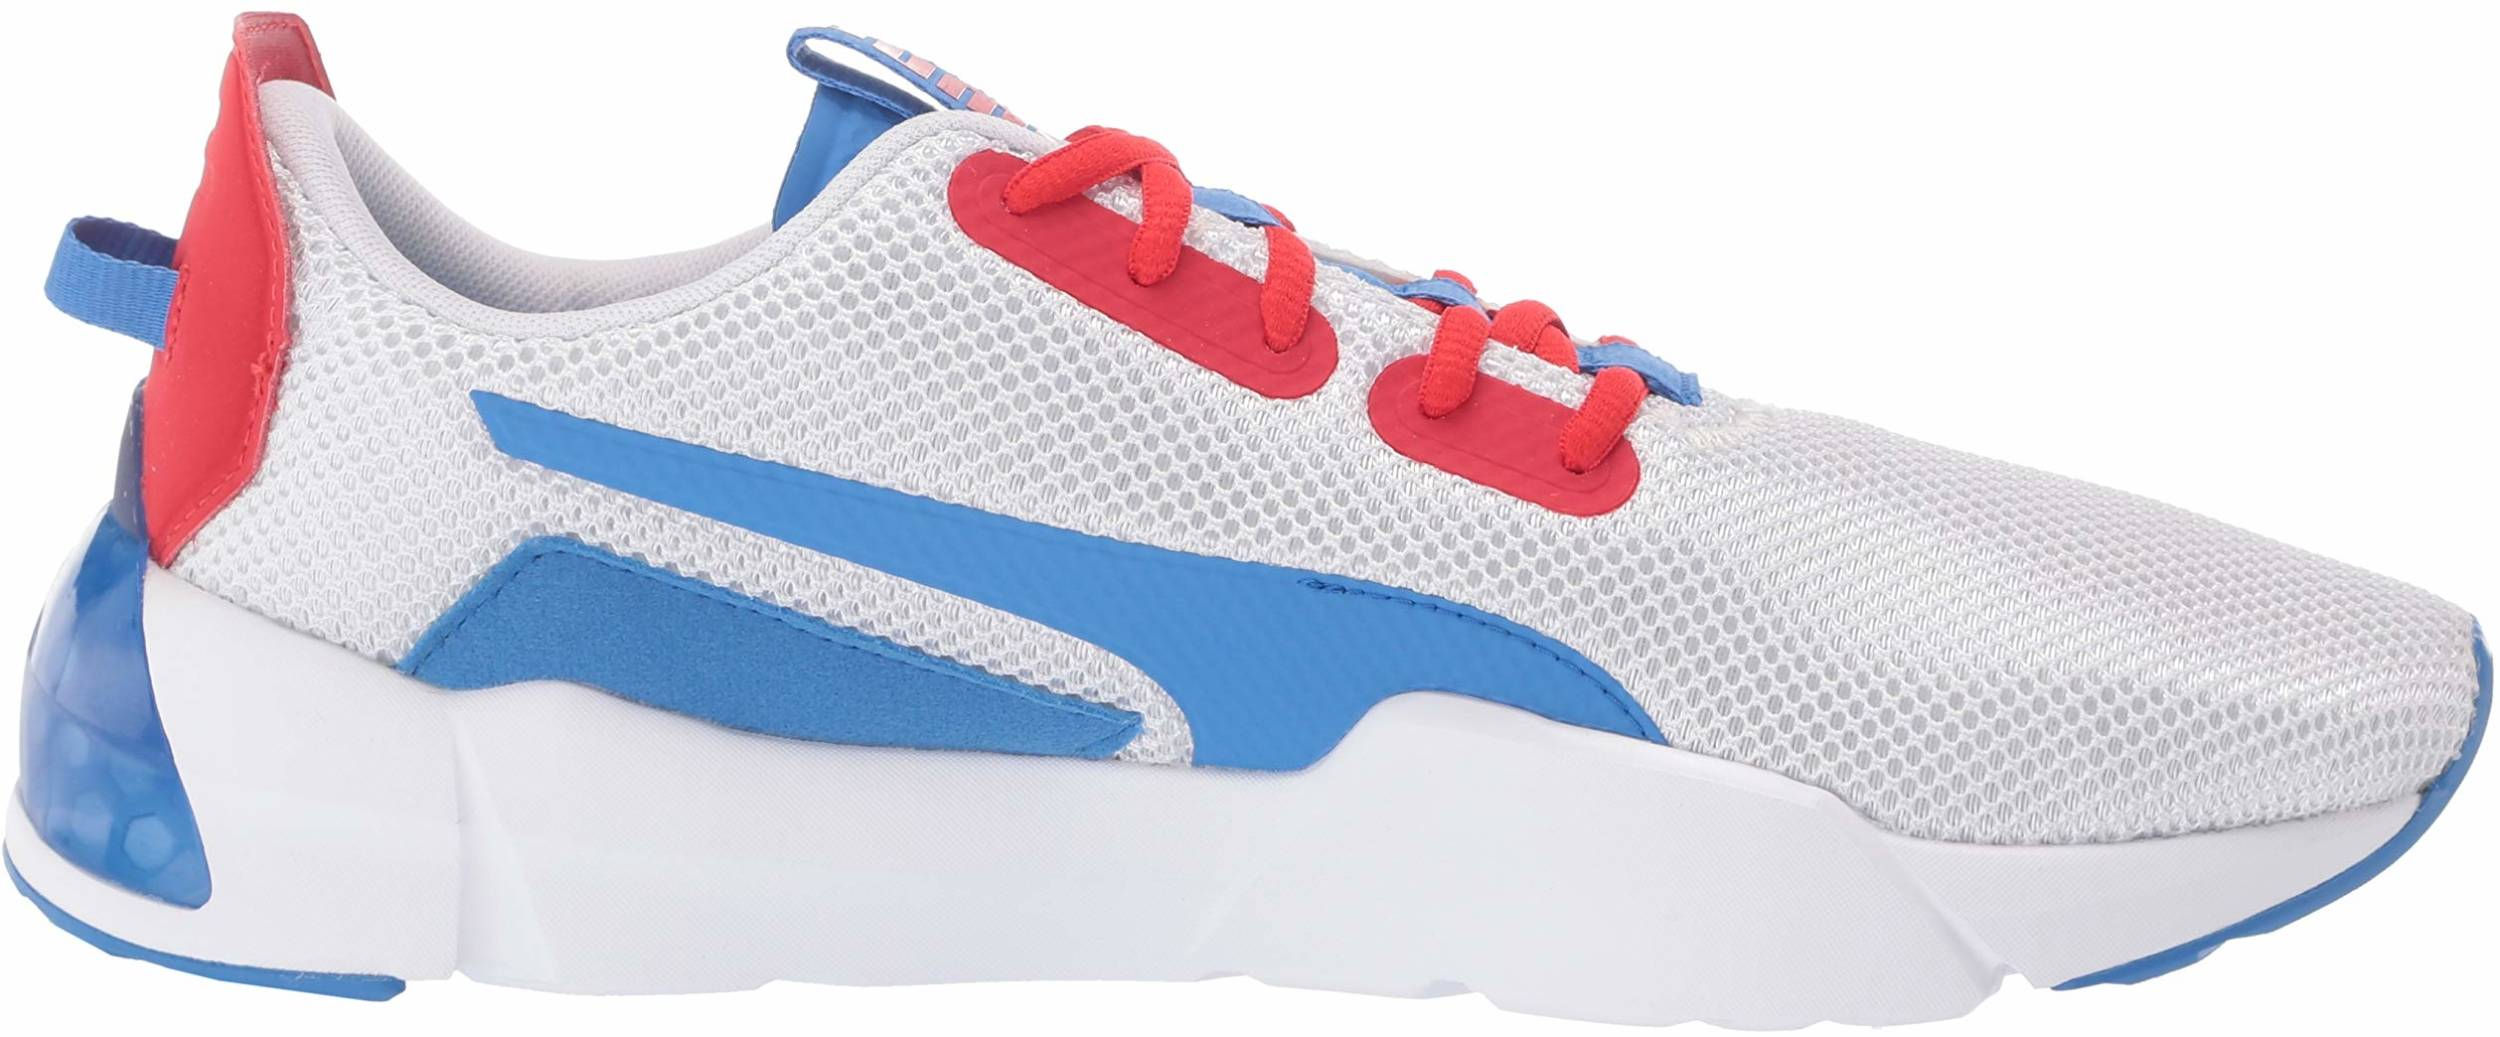 Only $40 + Review of Puma Cell Phase